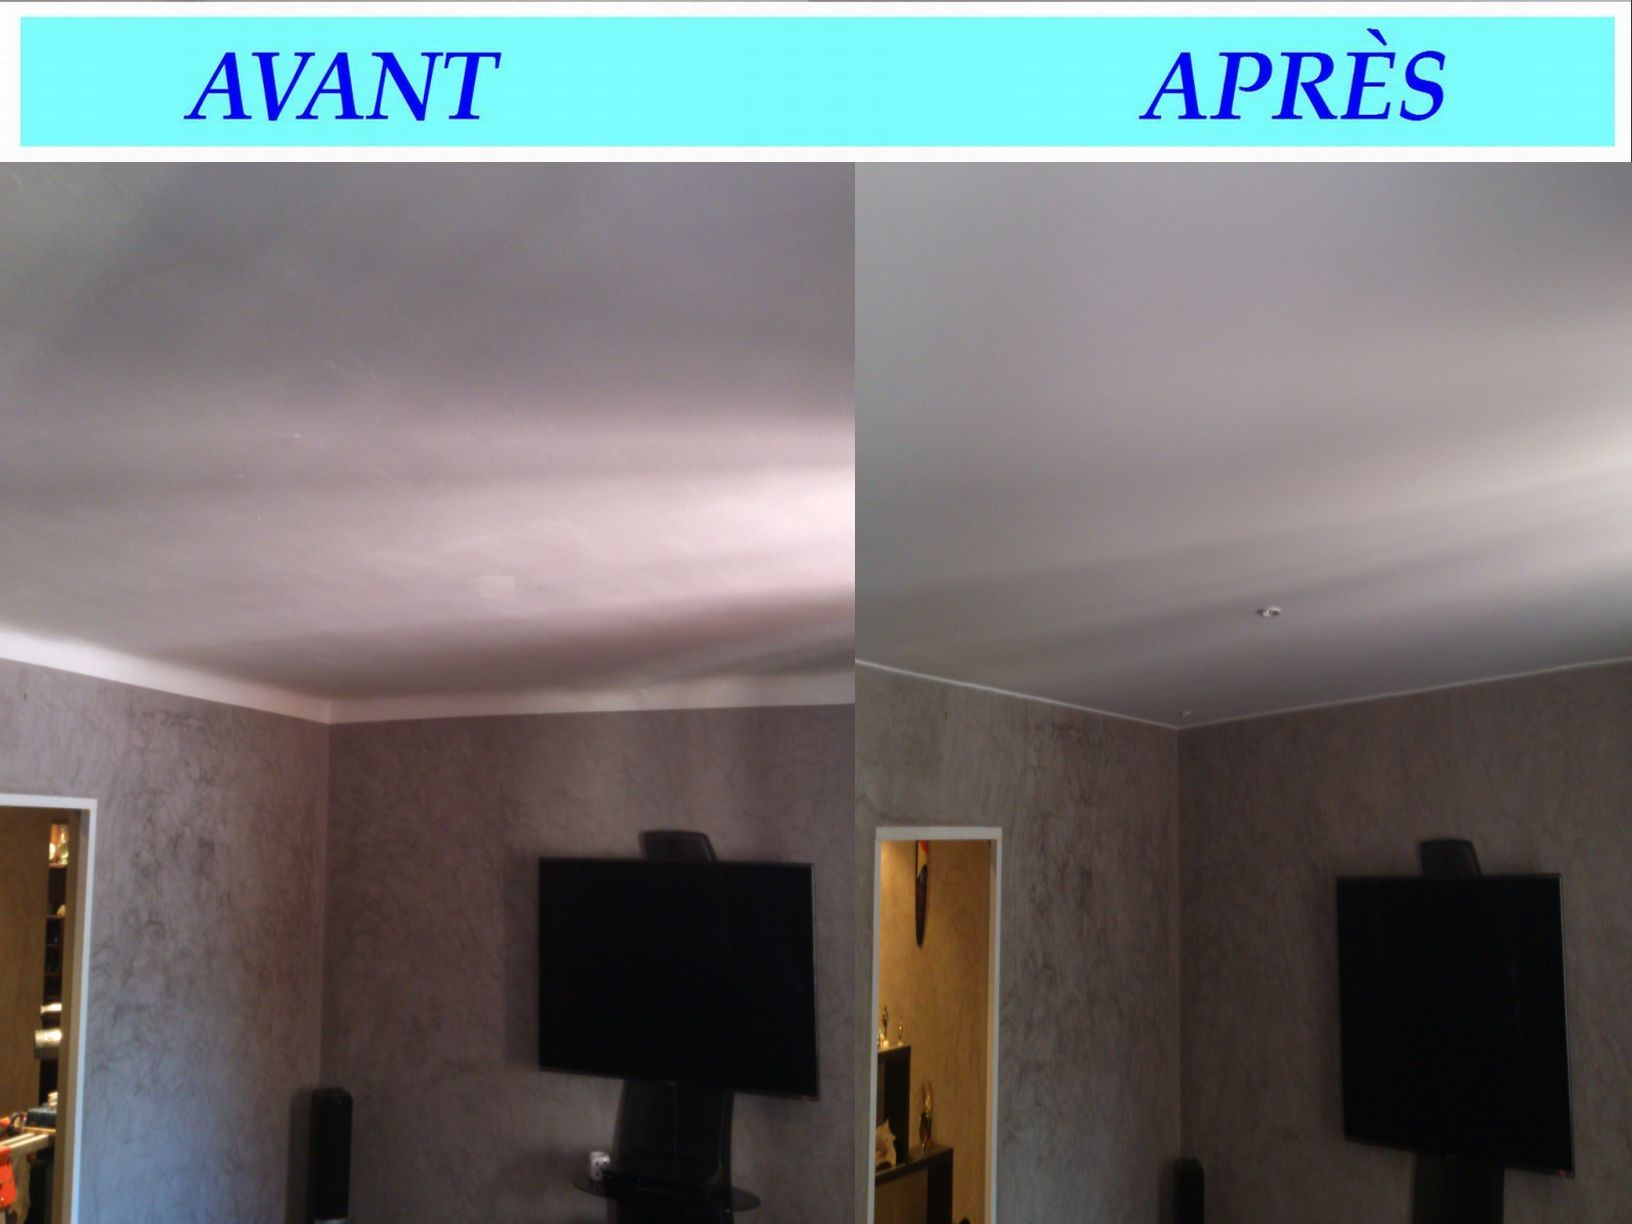 Prix m2 plafond tendu pos for Prix plafond tendu